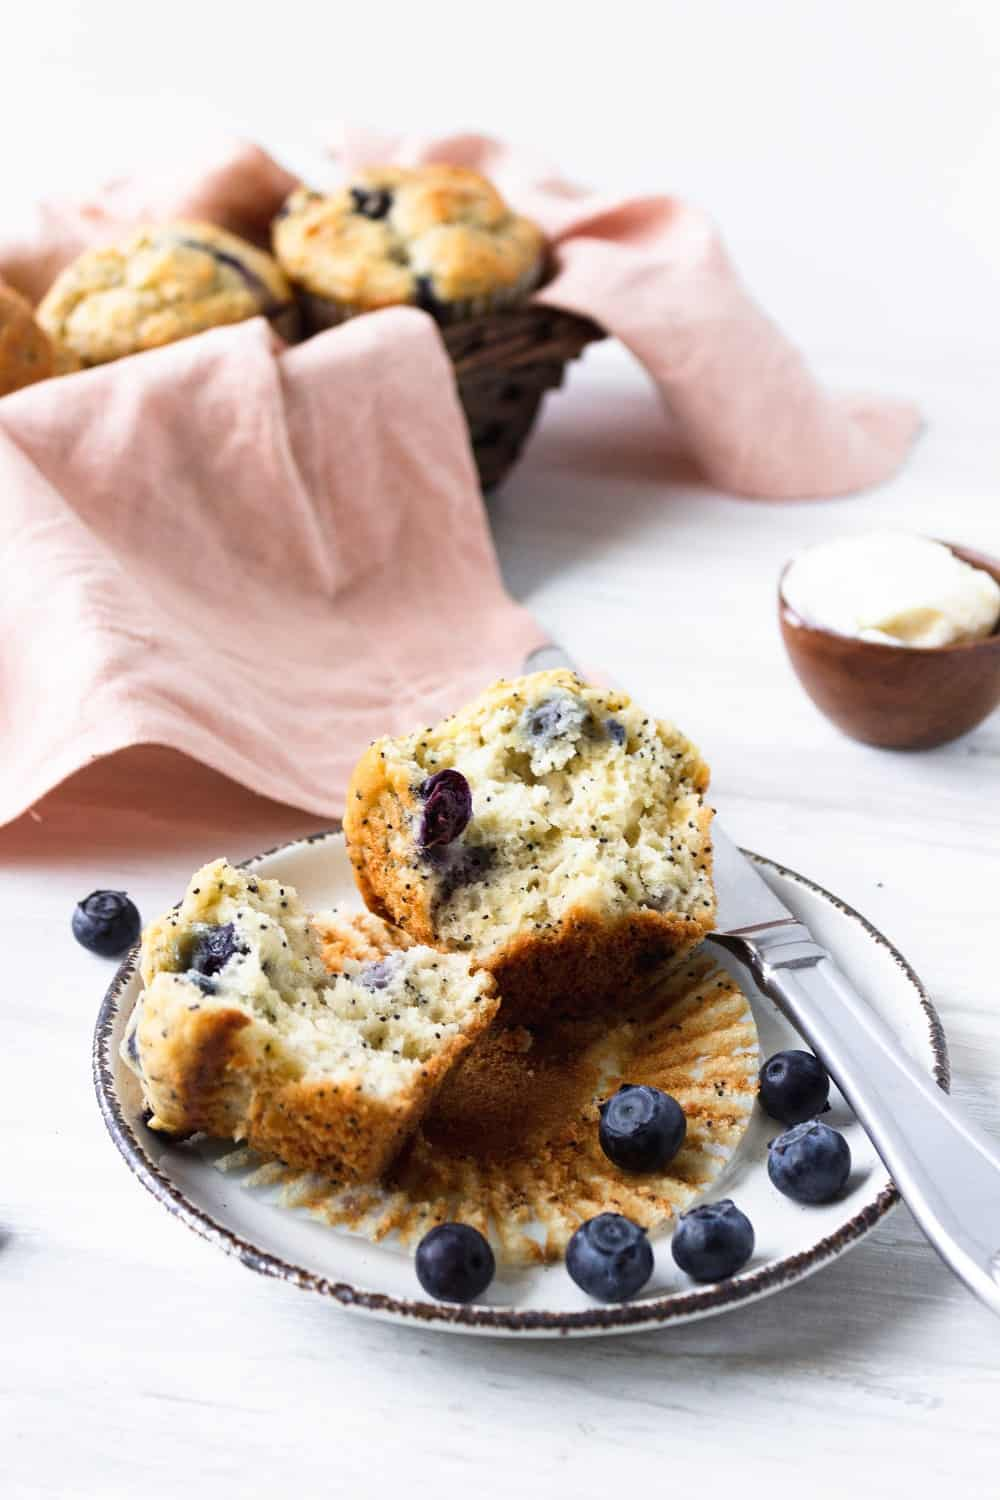 a dairy free blueberry muffin on a plate that's been cut in half